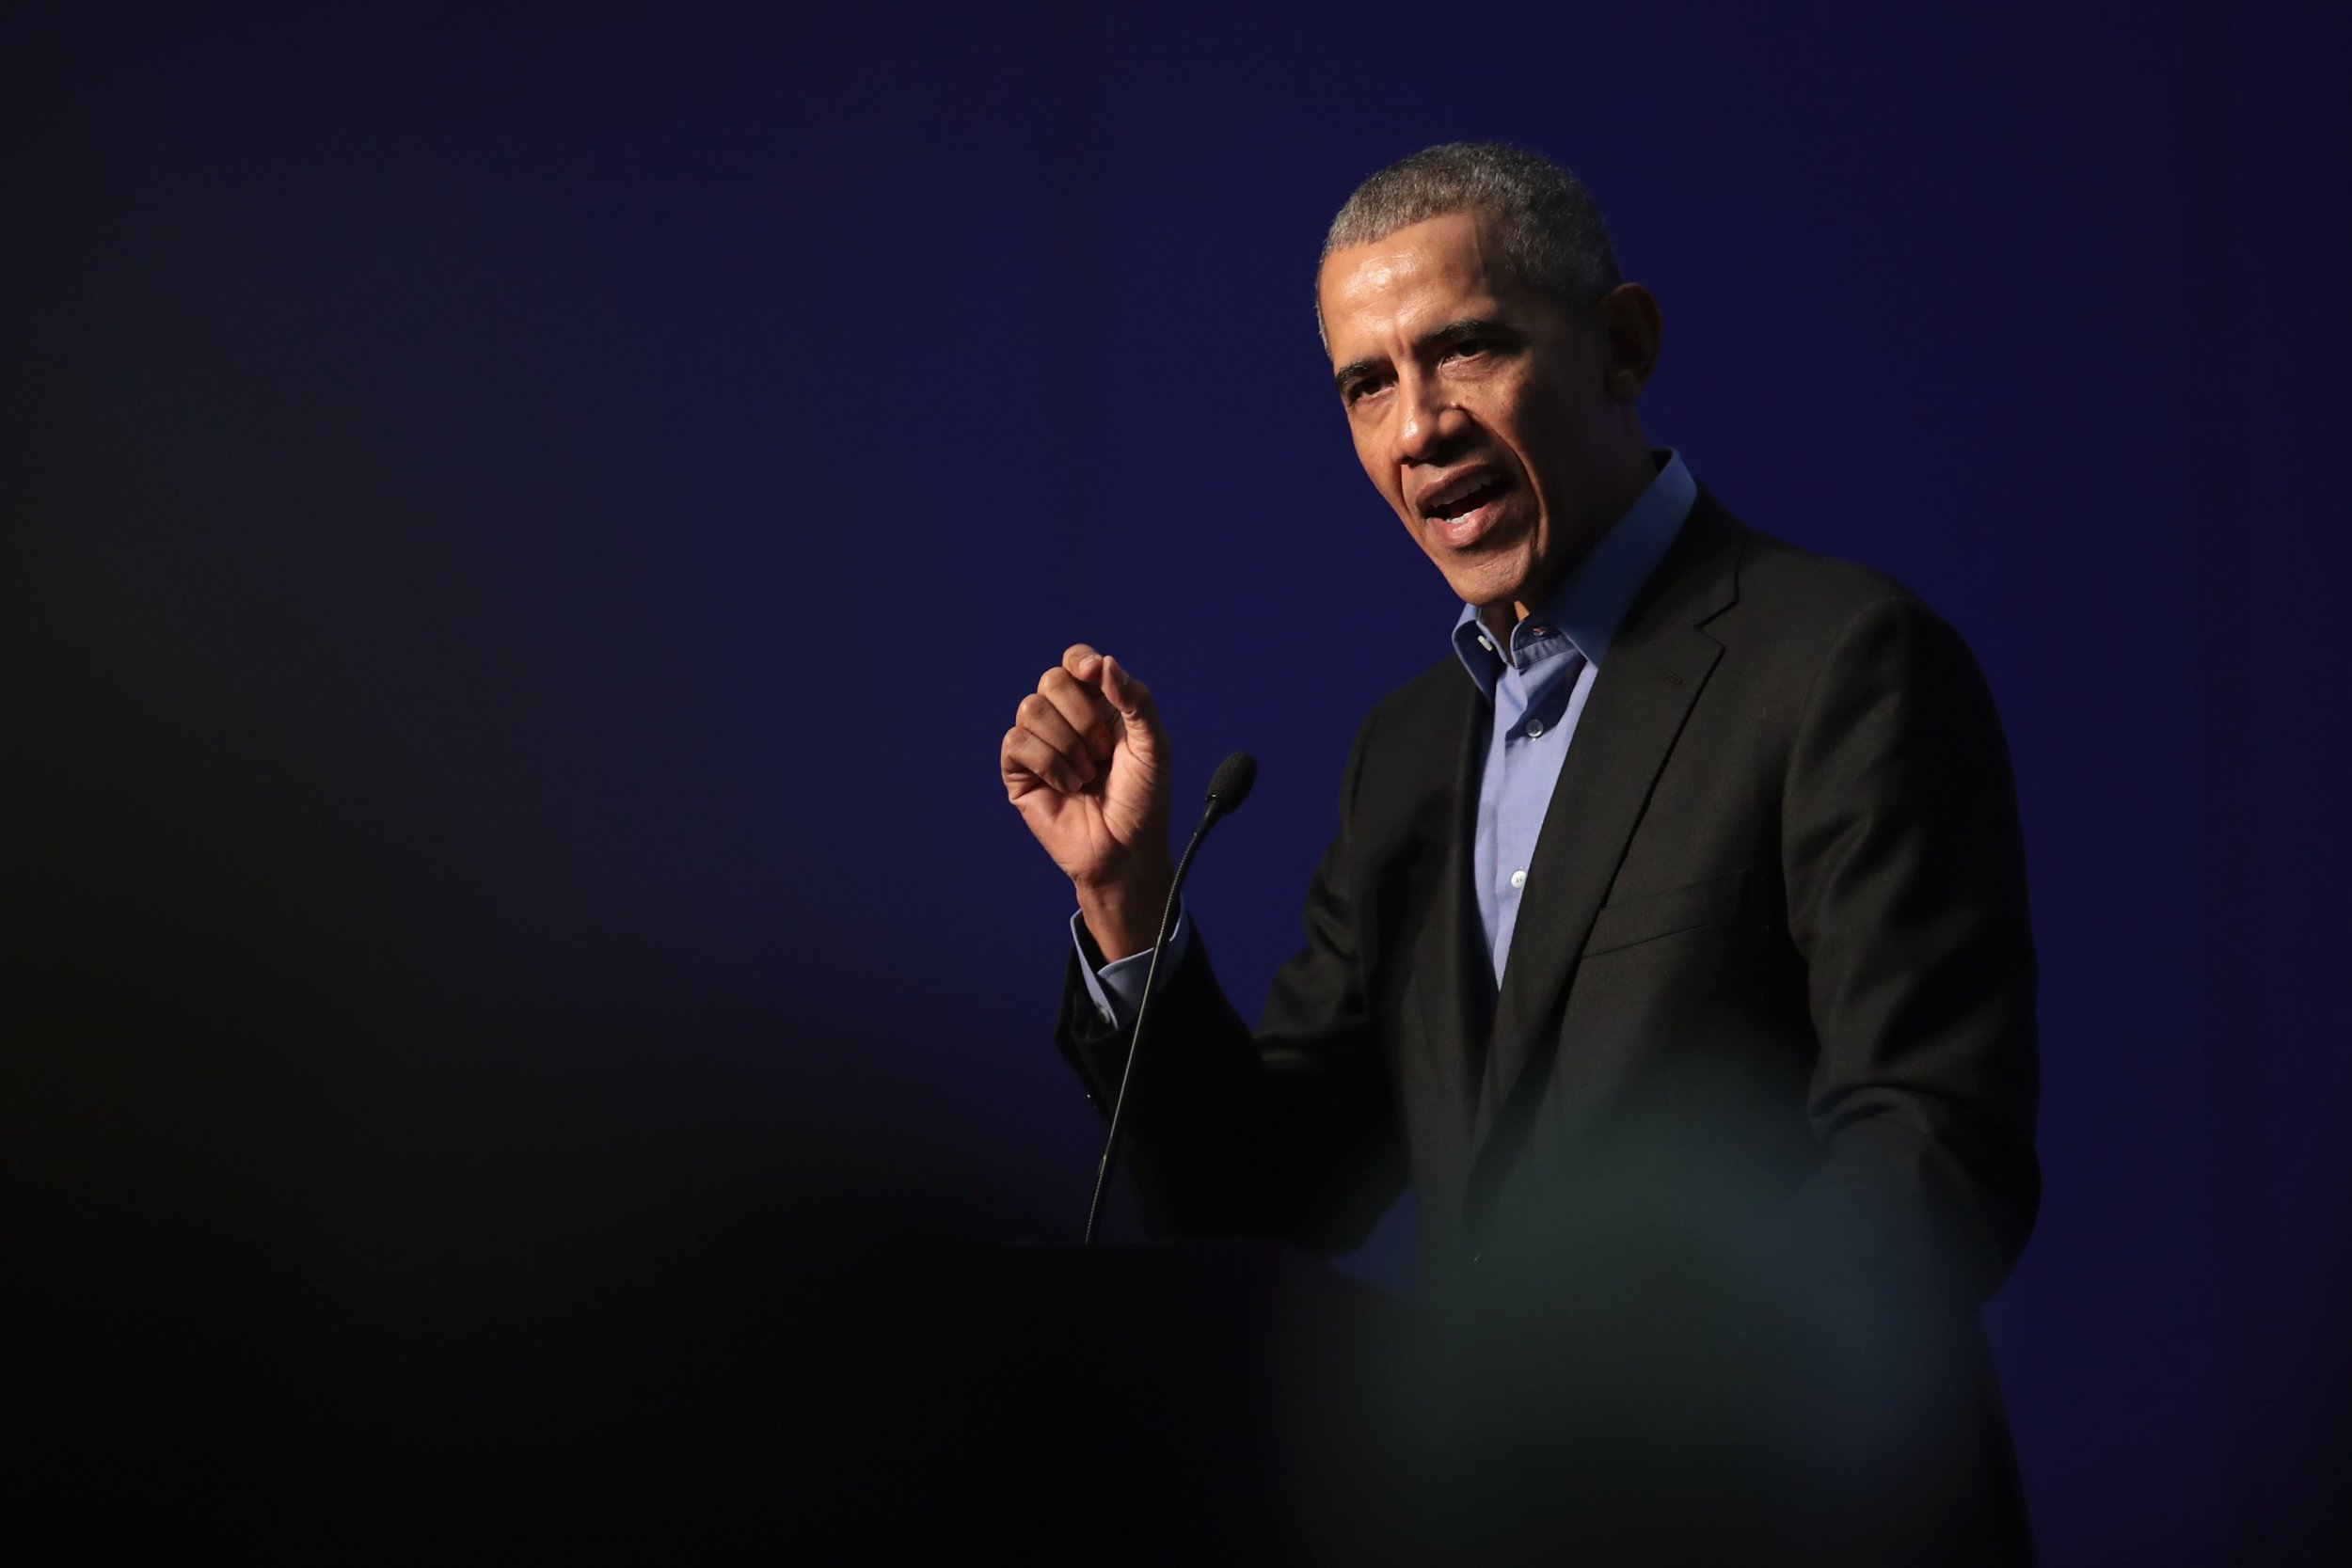 President Obama Chimes In On The Democratic Infighting. His Take Is Enlightening